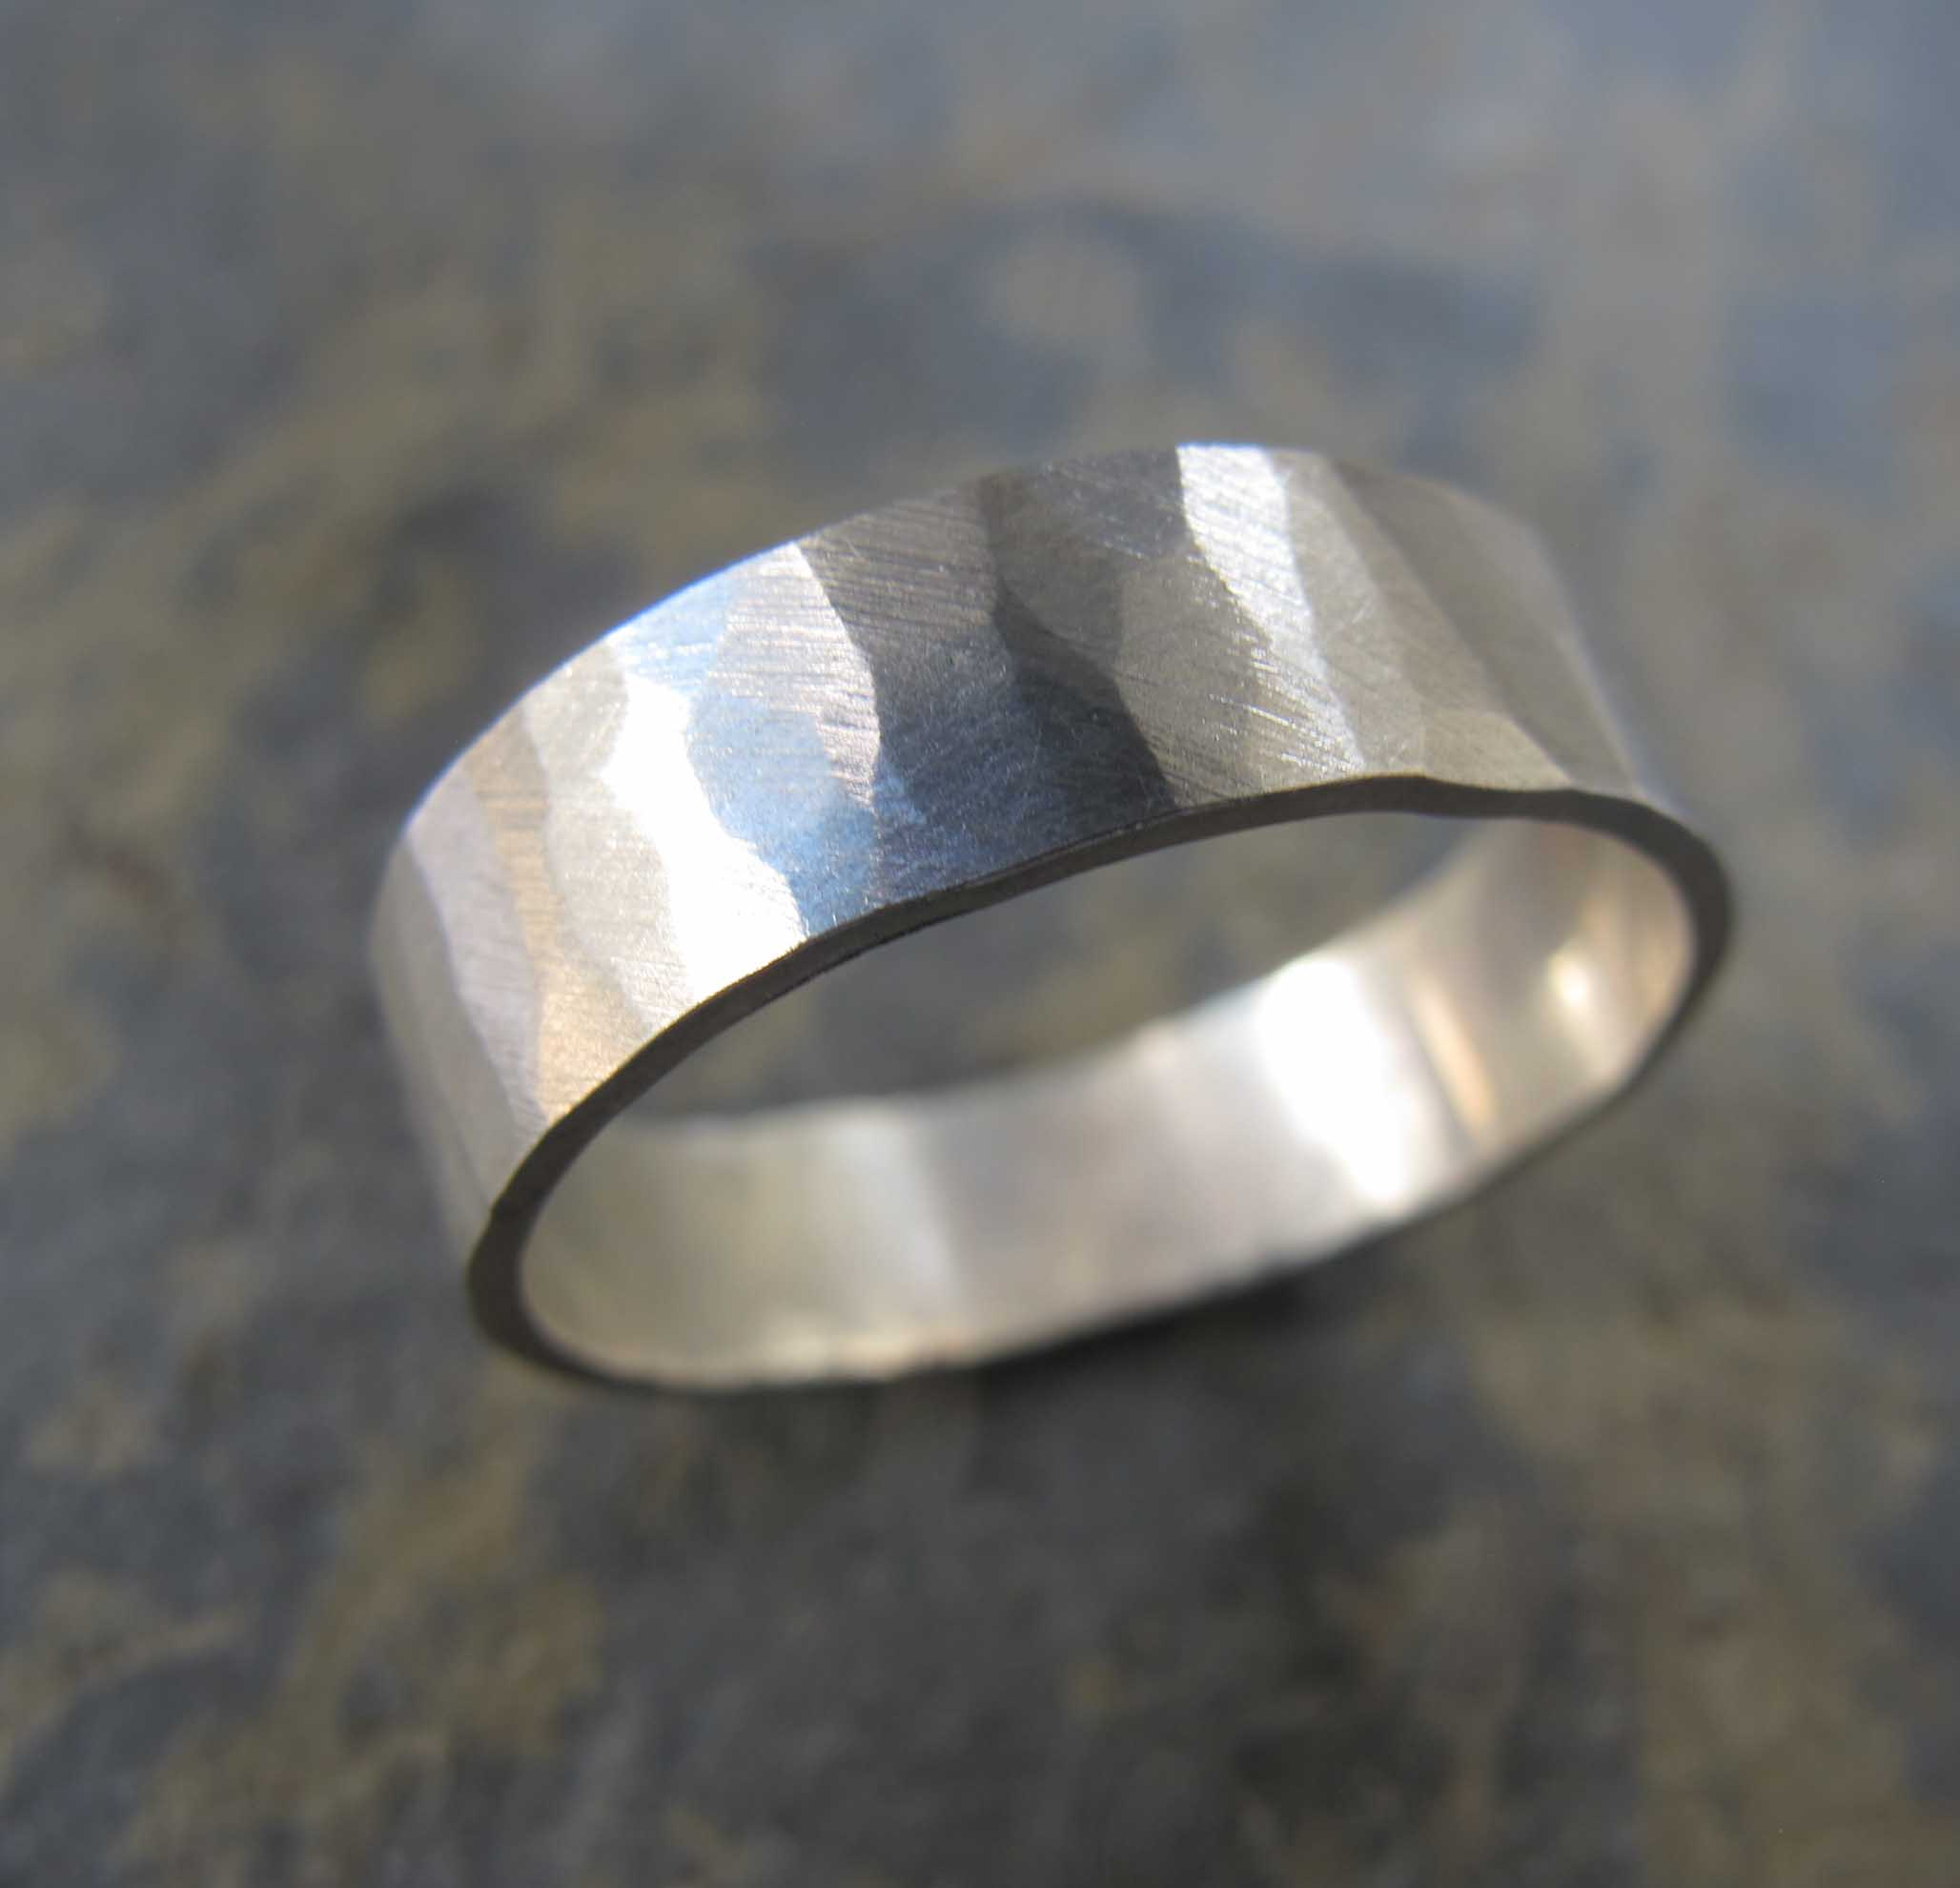 Mens handmade wedding band rings  London  Londons Artist Quarter